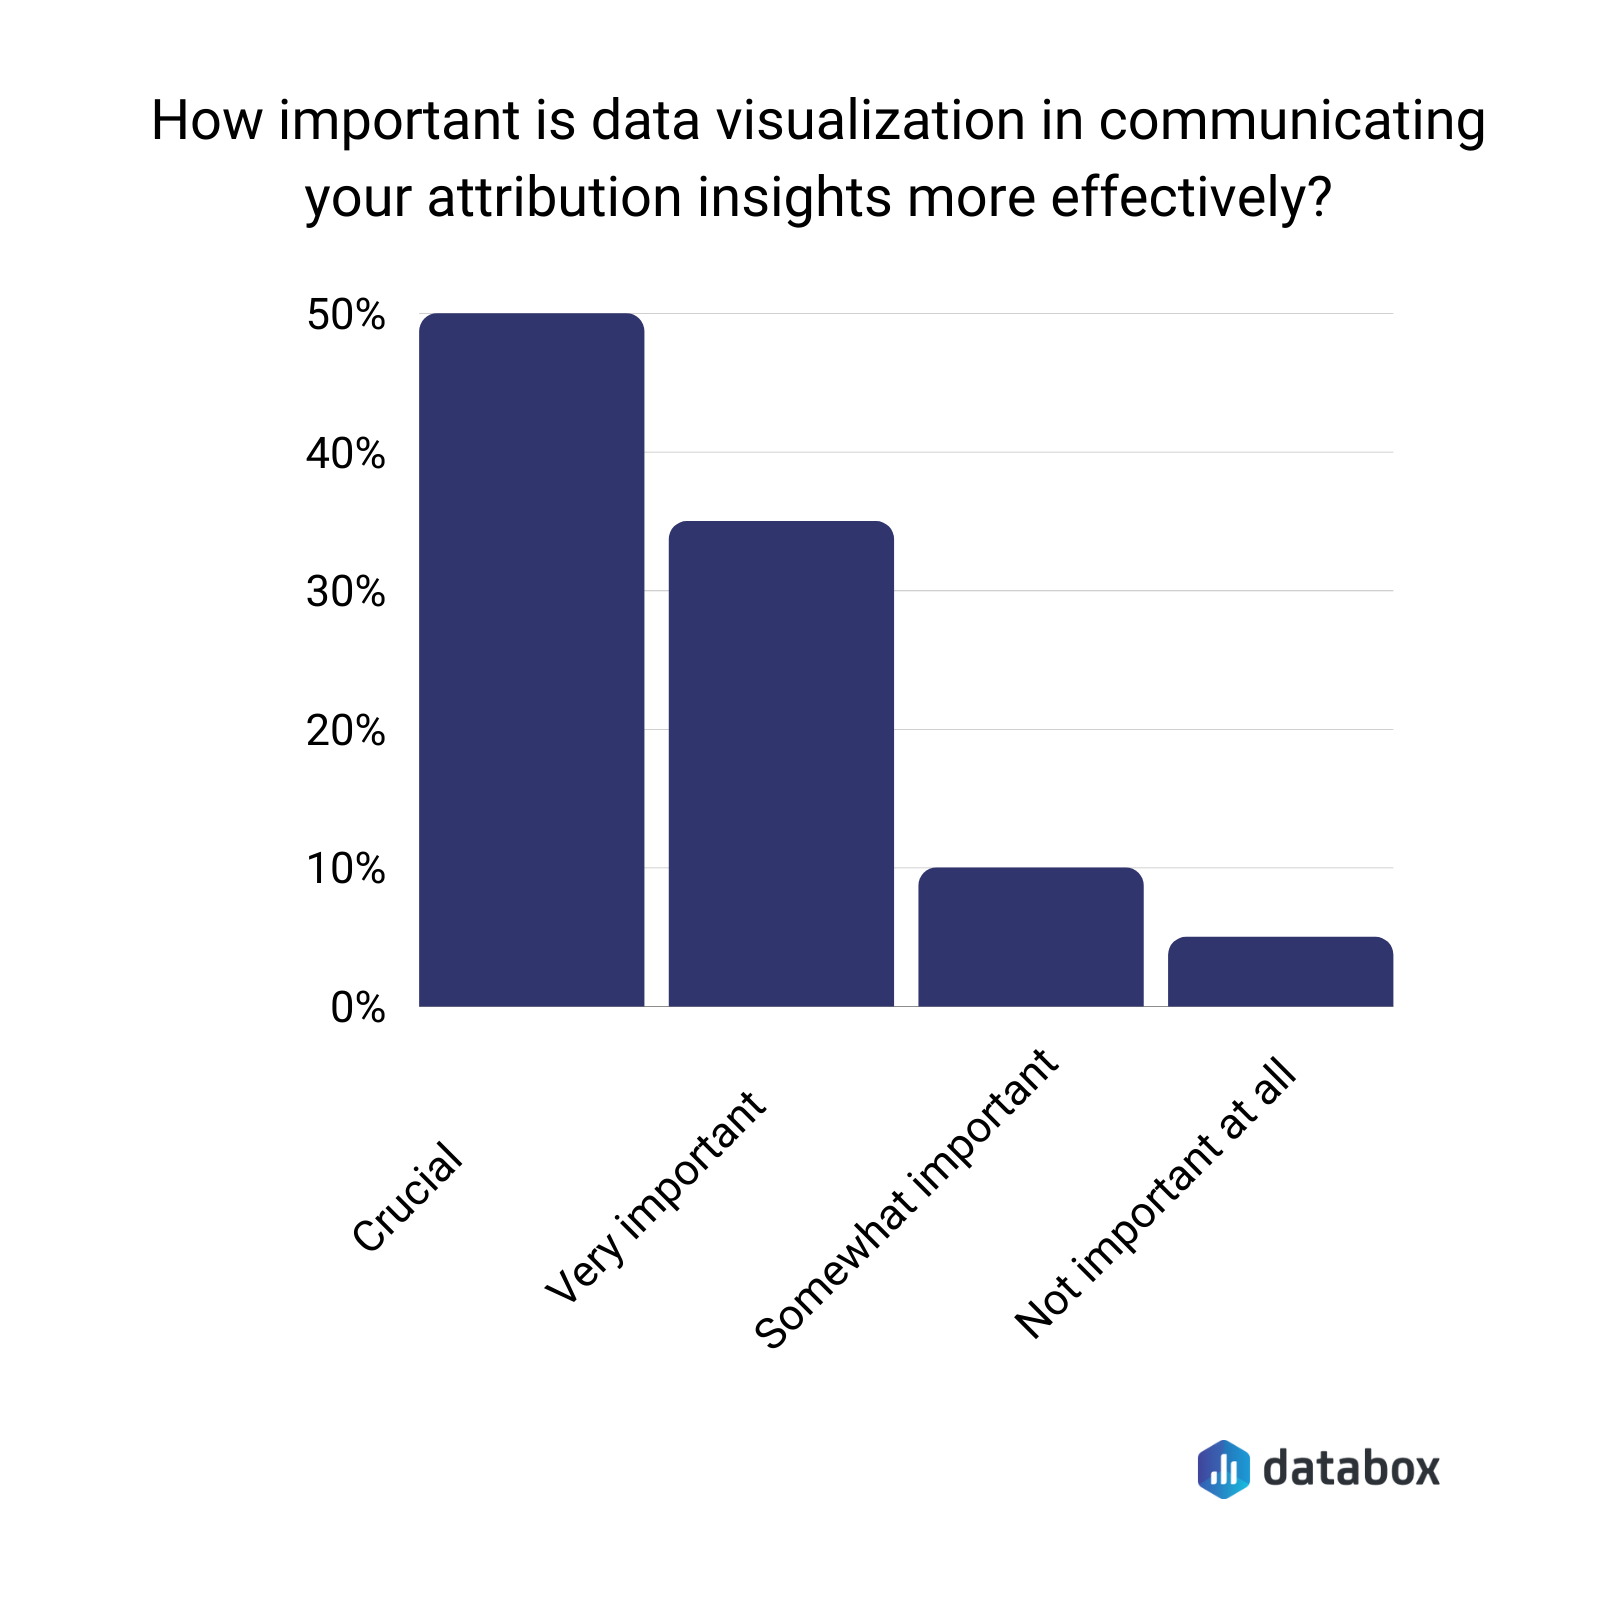 Importance of data visualization in communicating attribution insights